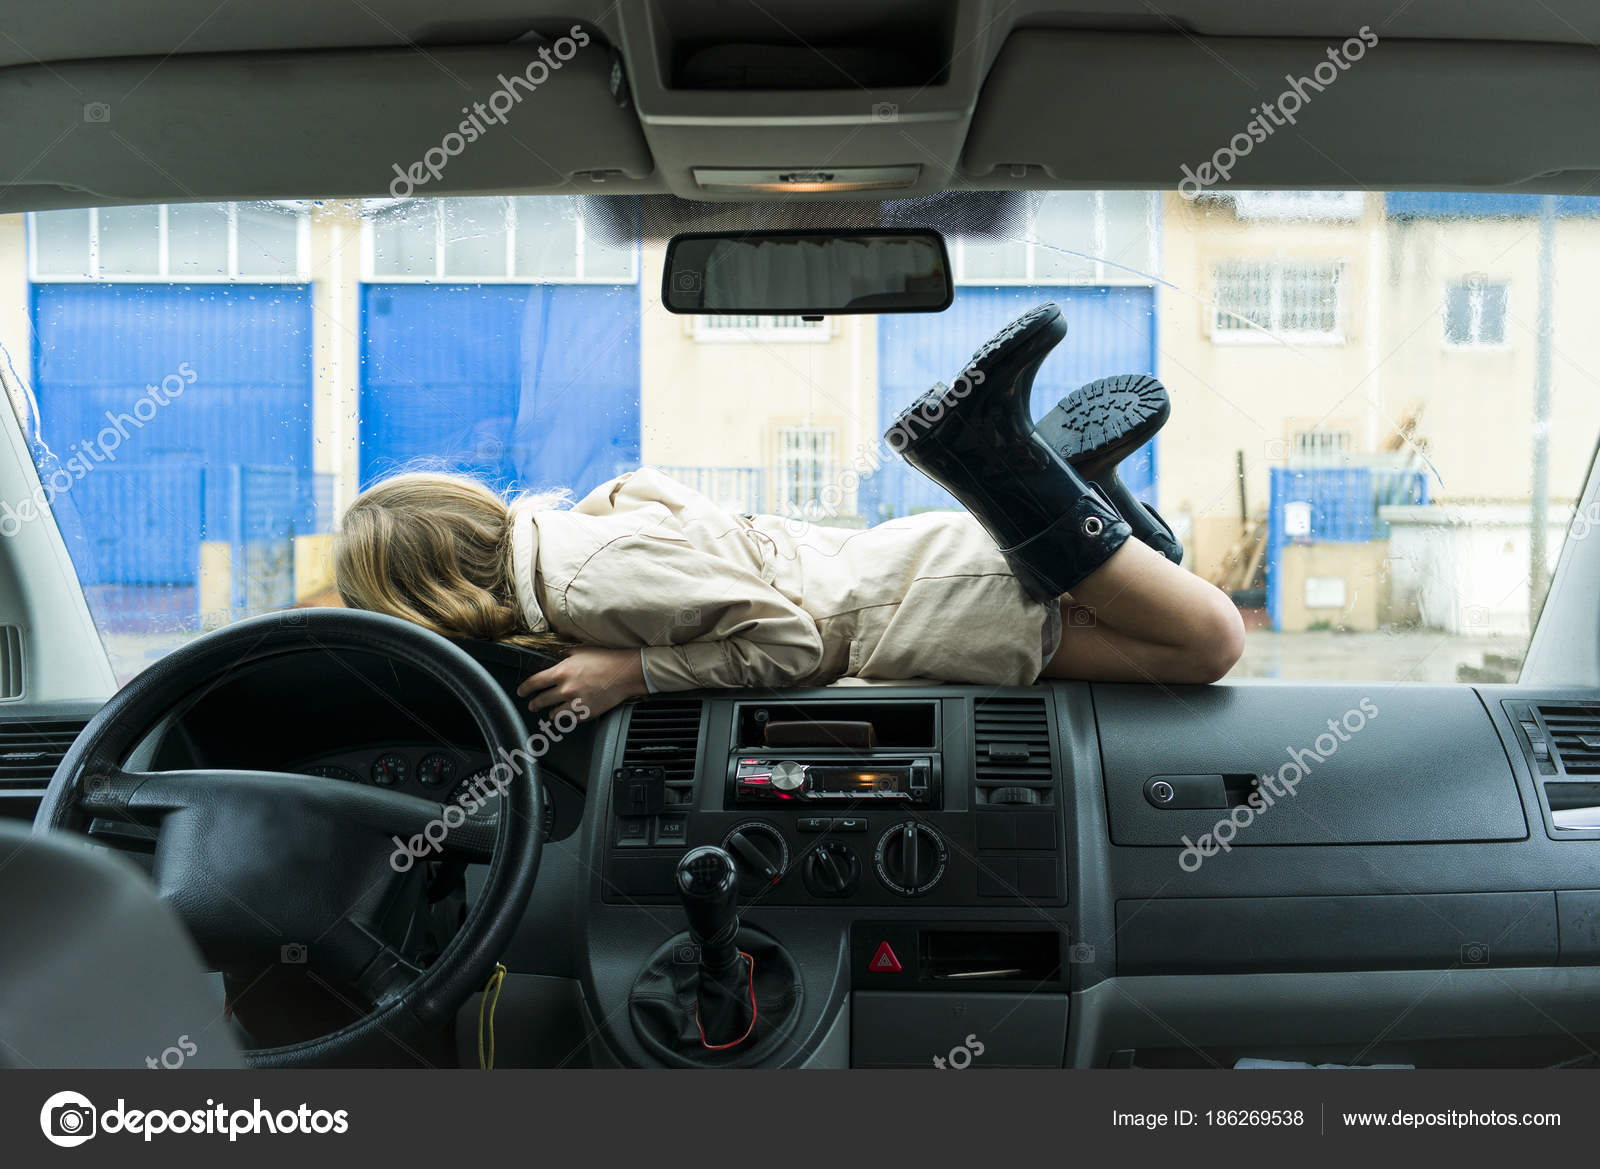 Toddler Car Dashboard Toddler Laying On Dashboard Of Van Stock Photo